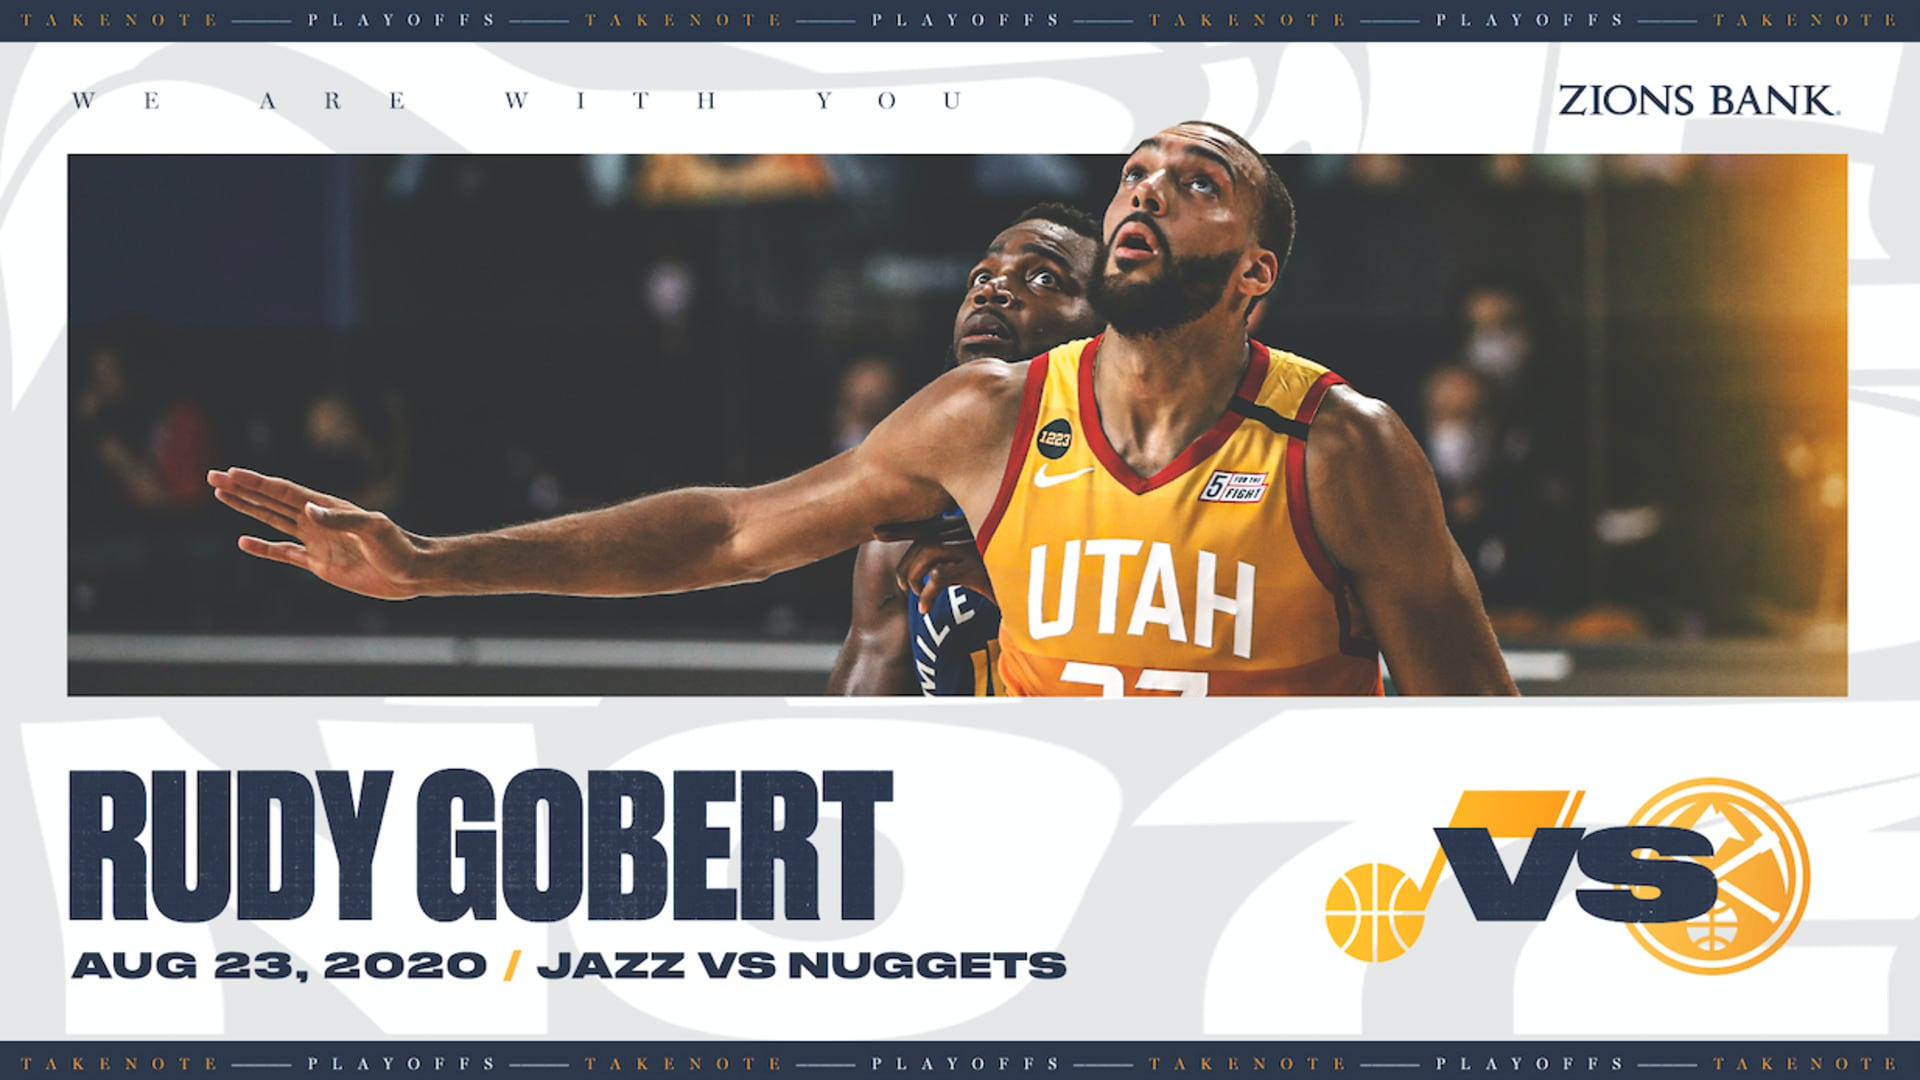 Highlights: Rudy Gobert — 17 points, 11 rebounds